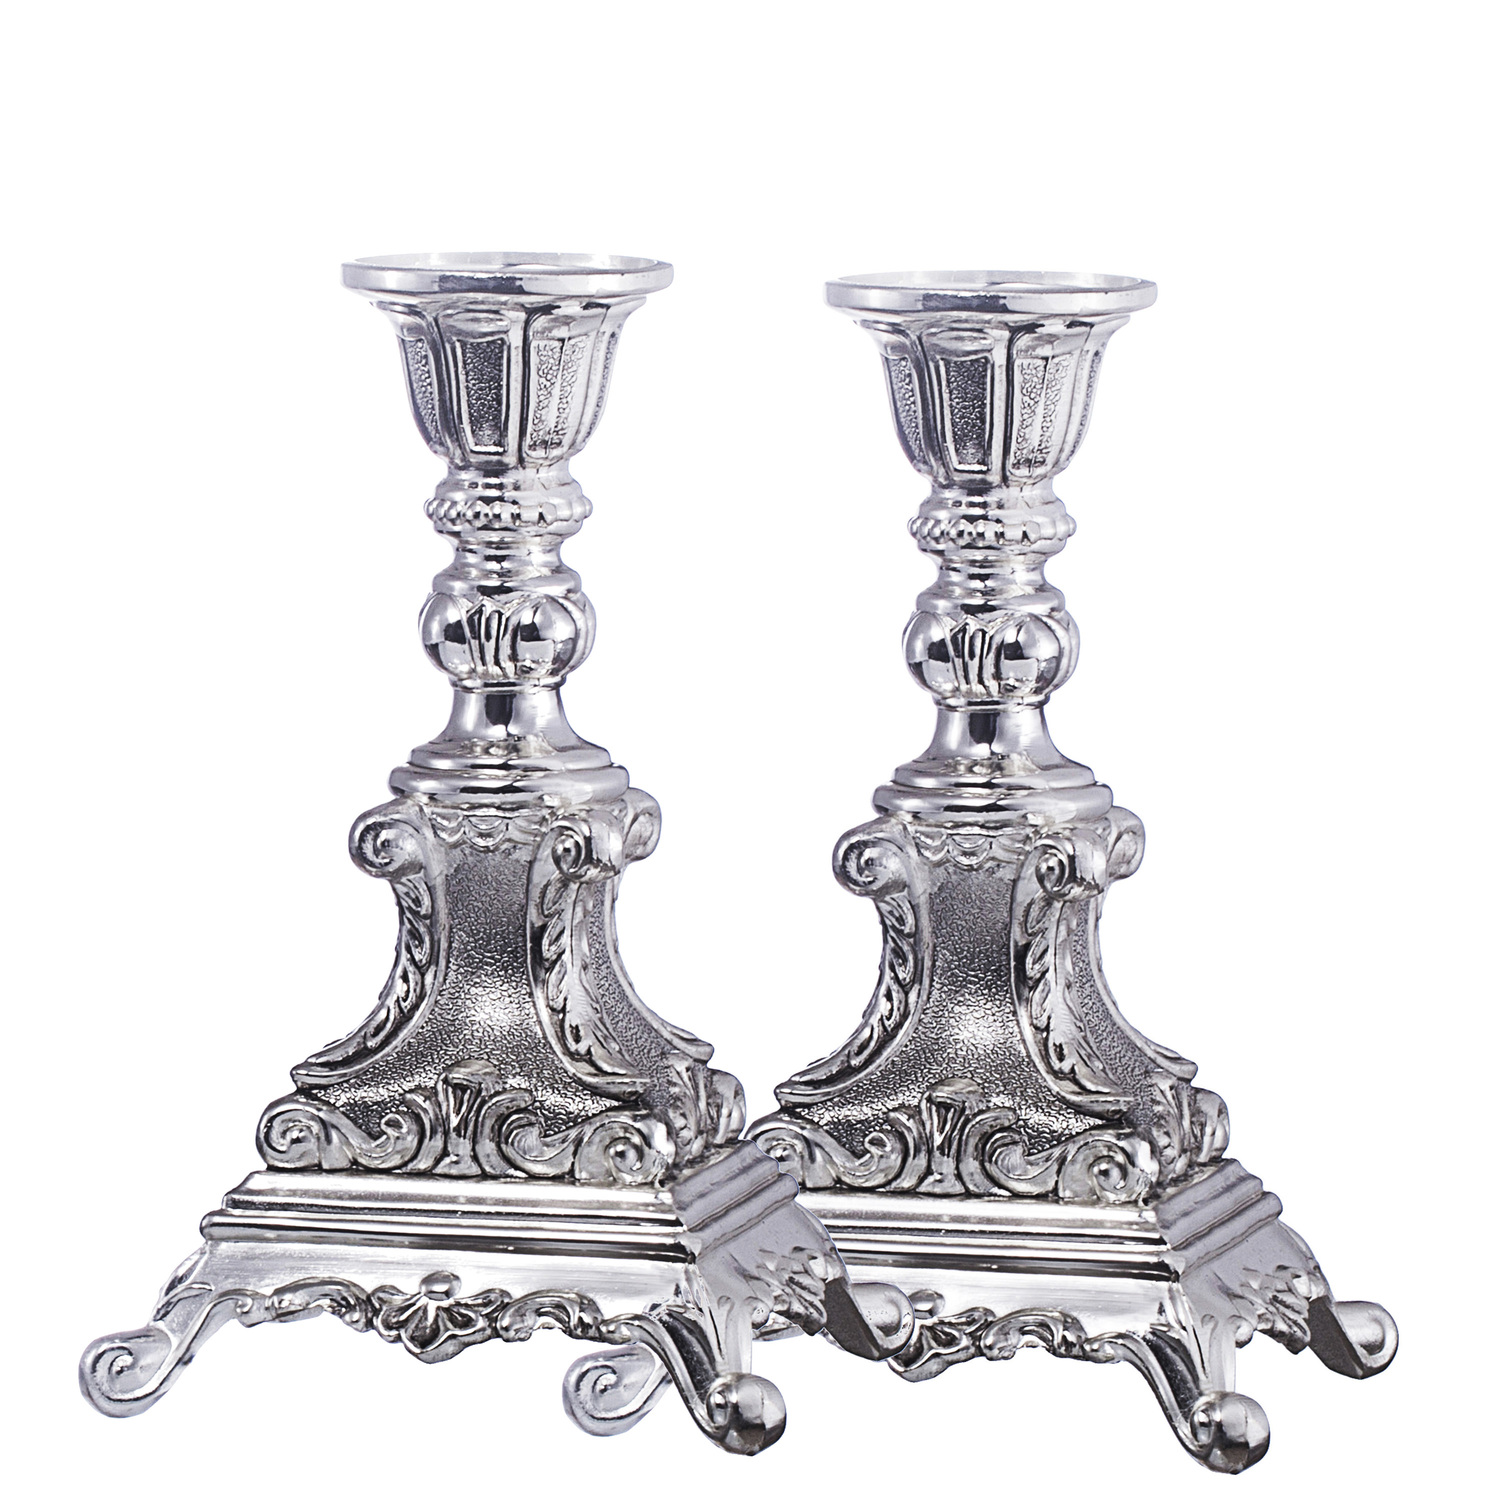 Elaborate Design Silver Plated Candle Holder Set  sc 1 th 225 & Design Silver Plated Candle Holder Set